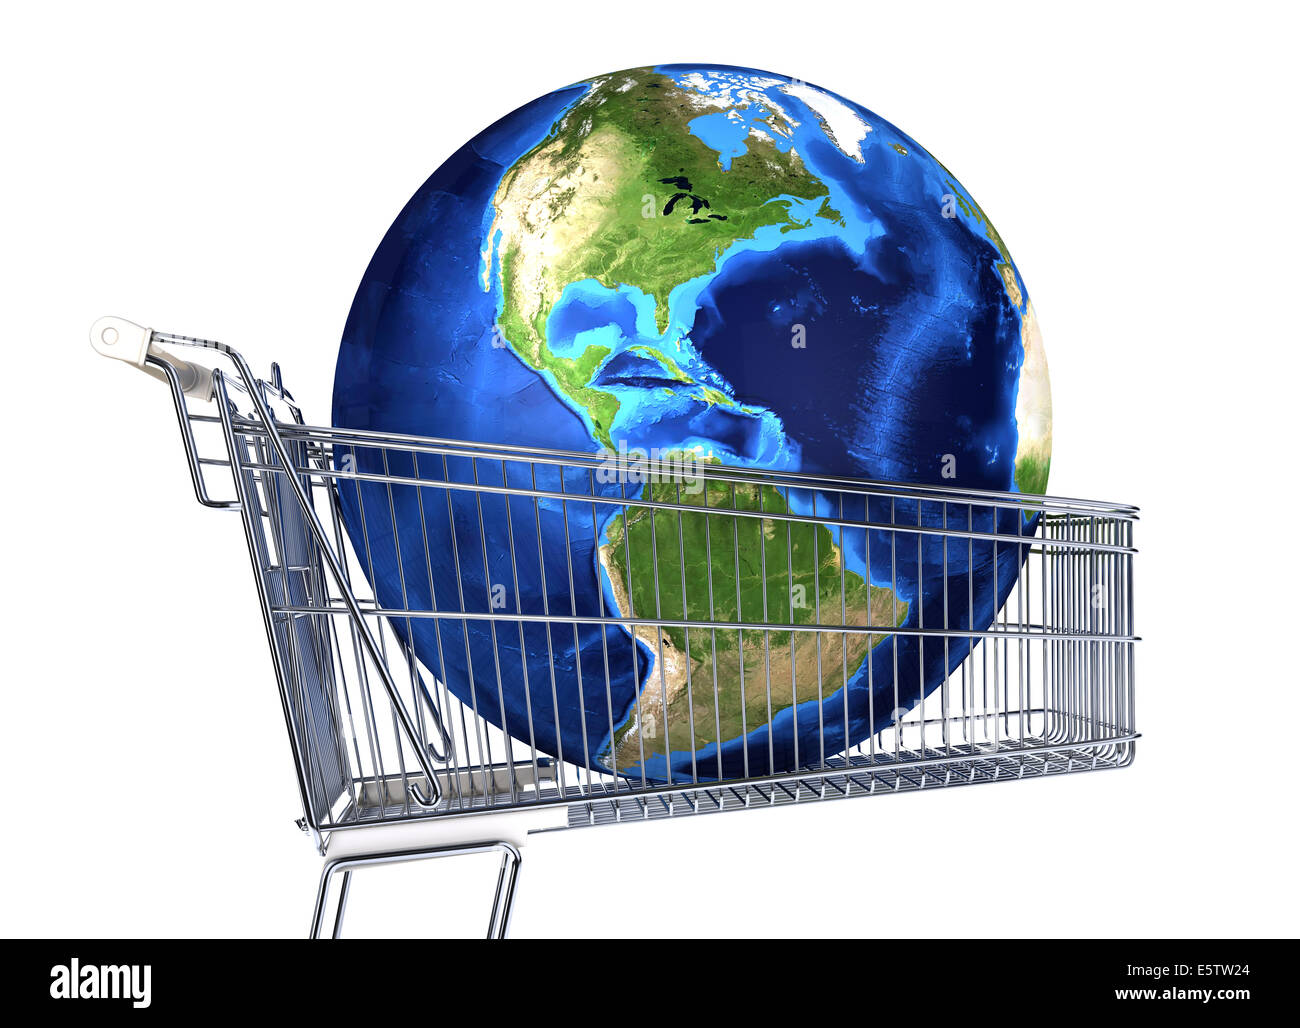 Planet Earth into supermarket trolley. Americas view. On white background. Clipping path included. - Stock Image